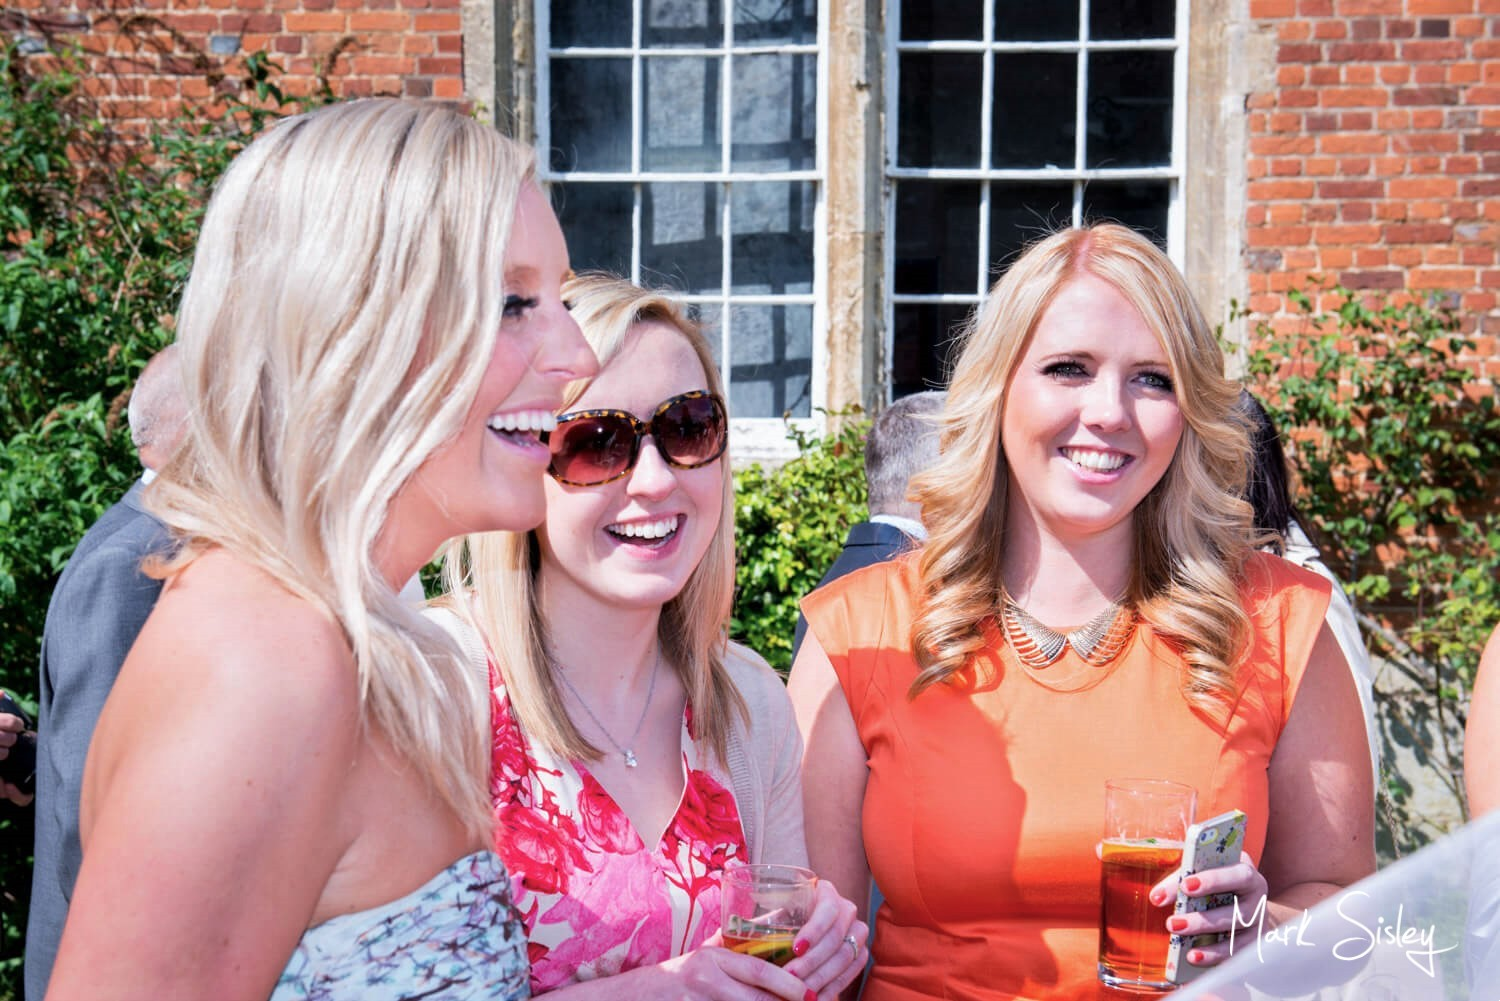 Dorton House wedding photos of some of the guests during the drinks reception